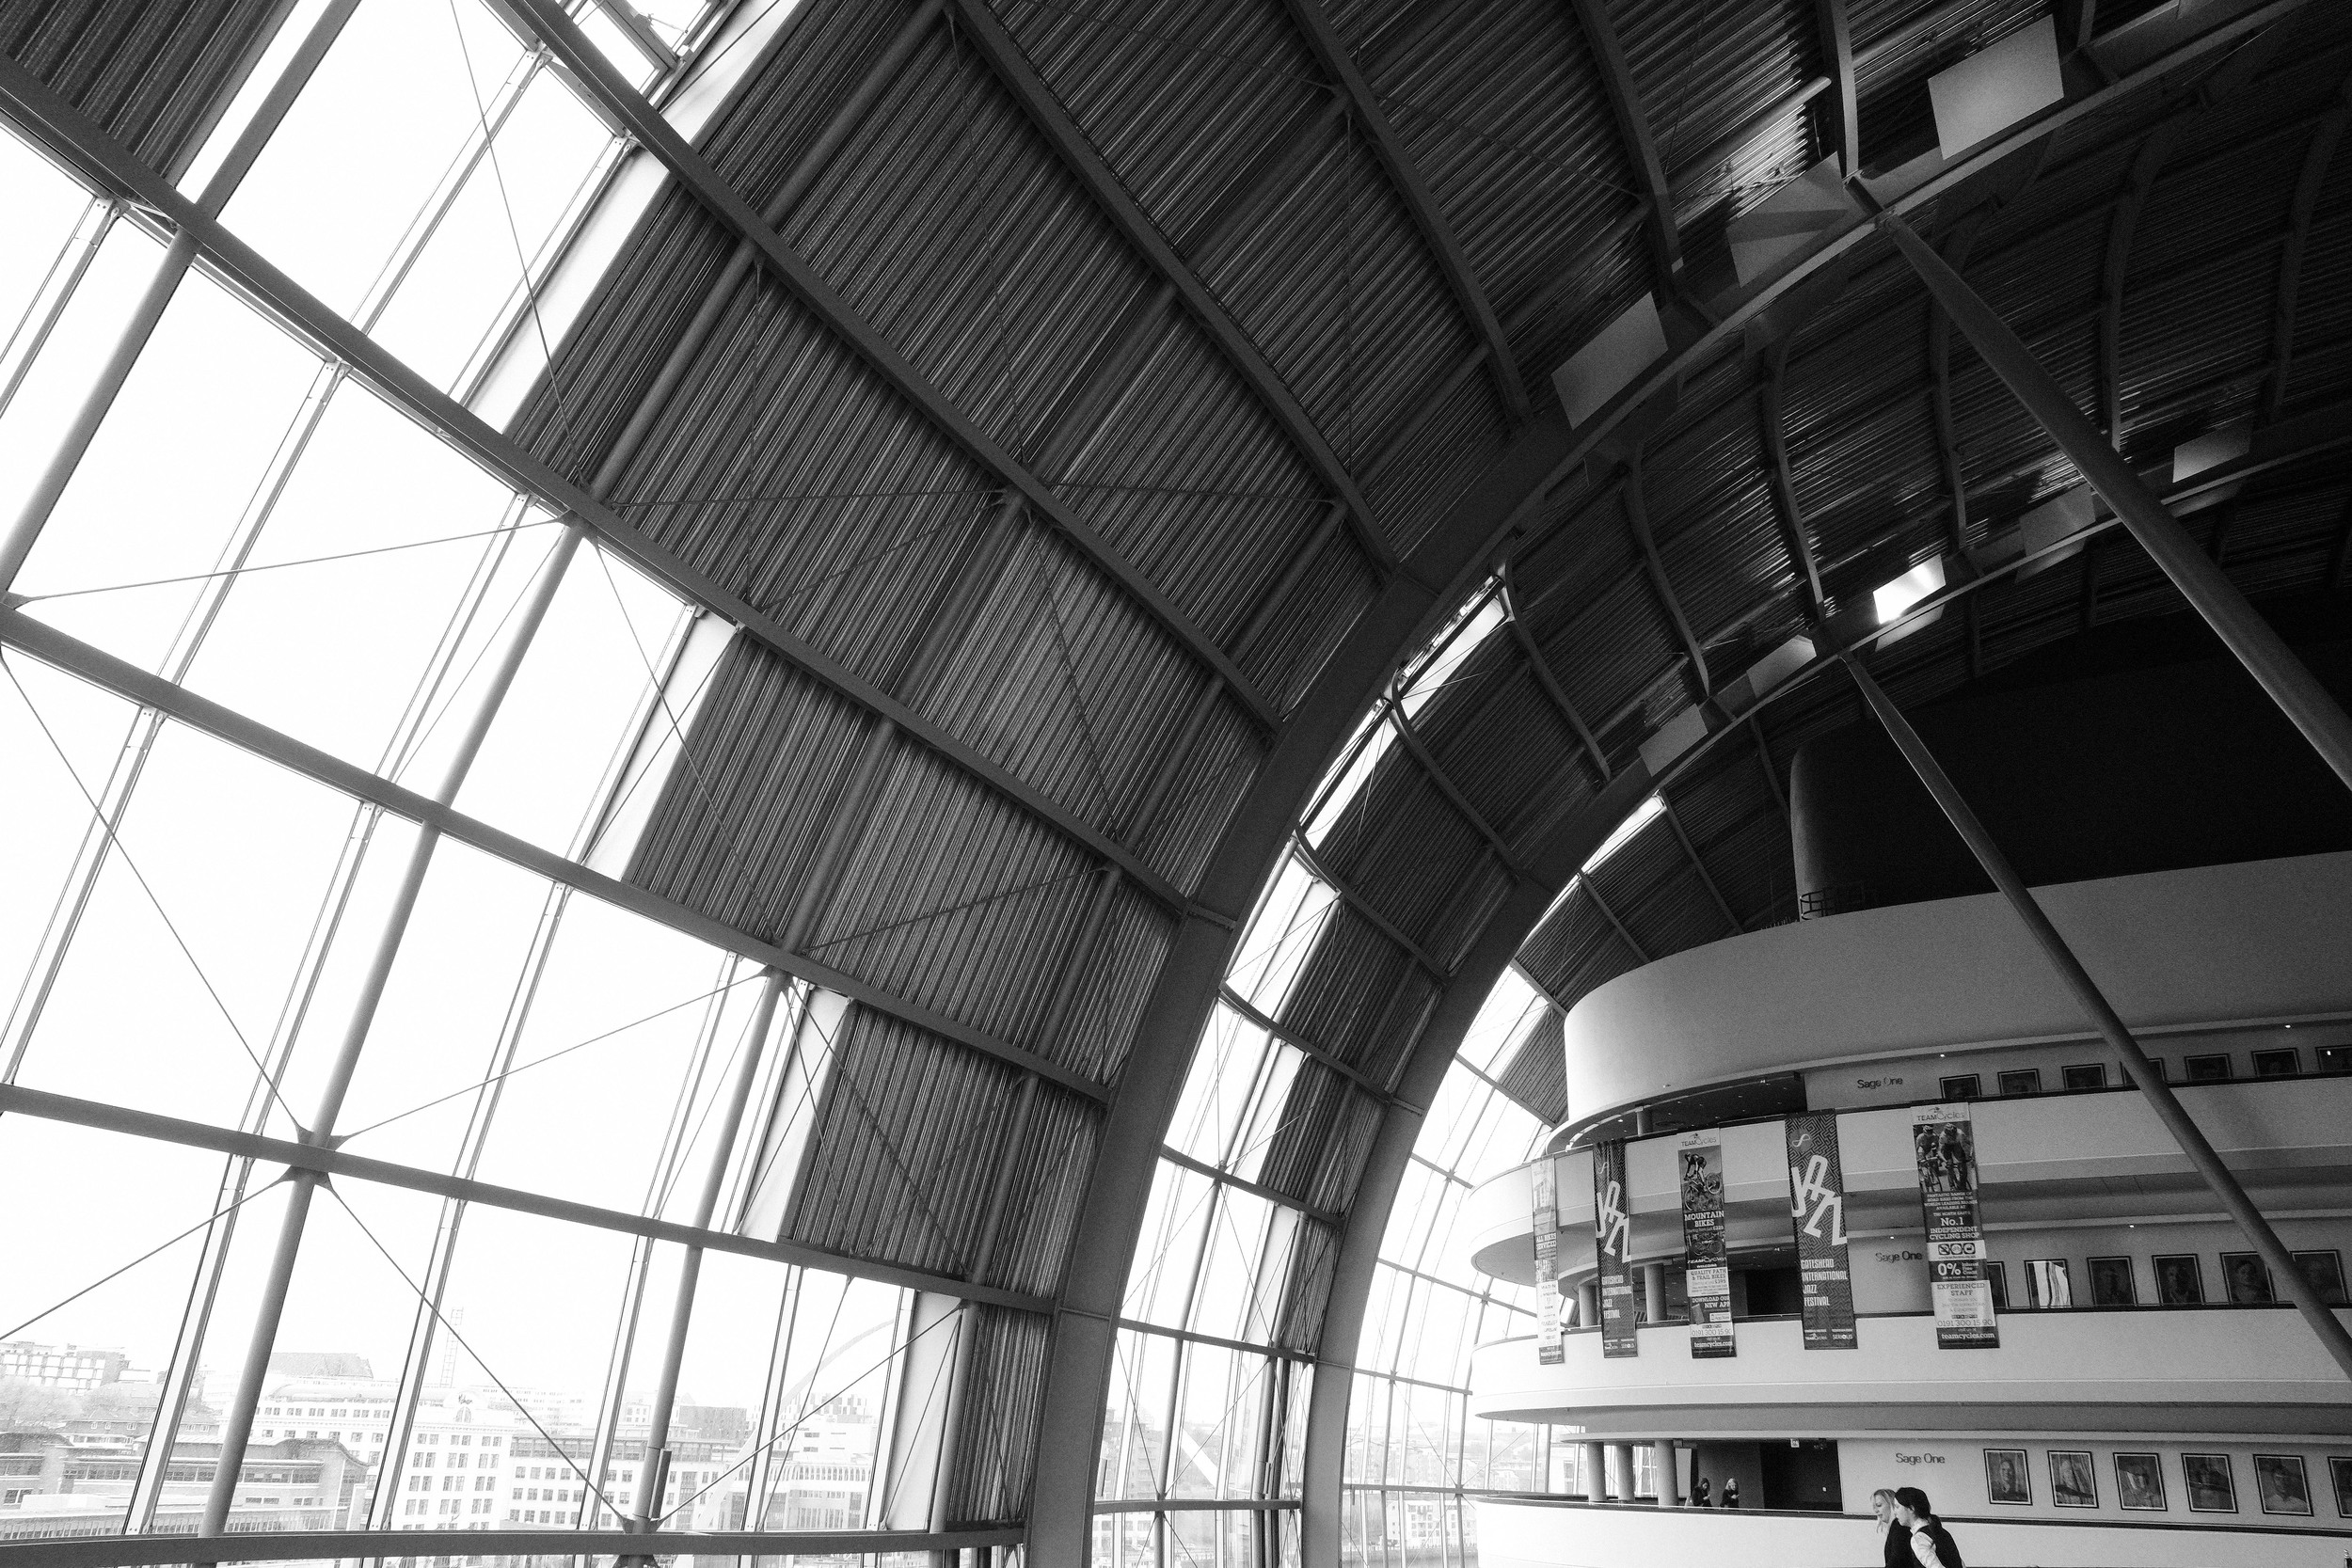 The interior of the Sage Gateshead is a unique and exciting space